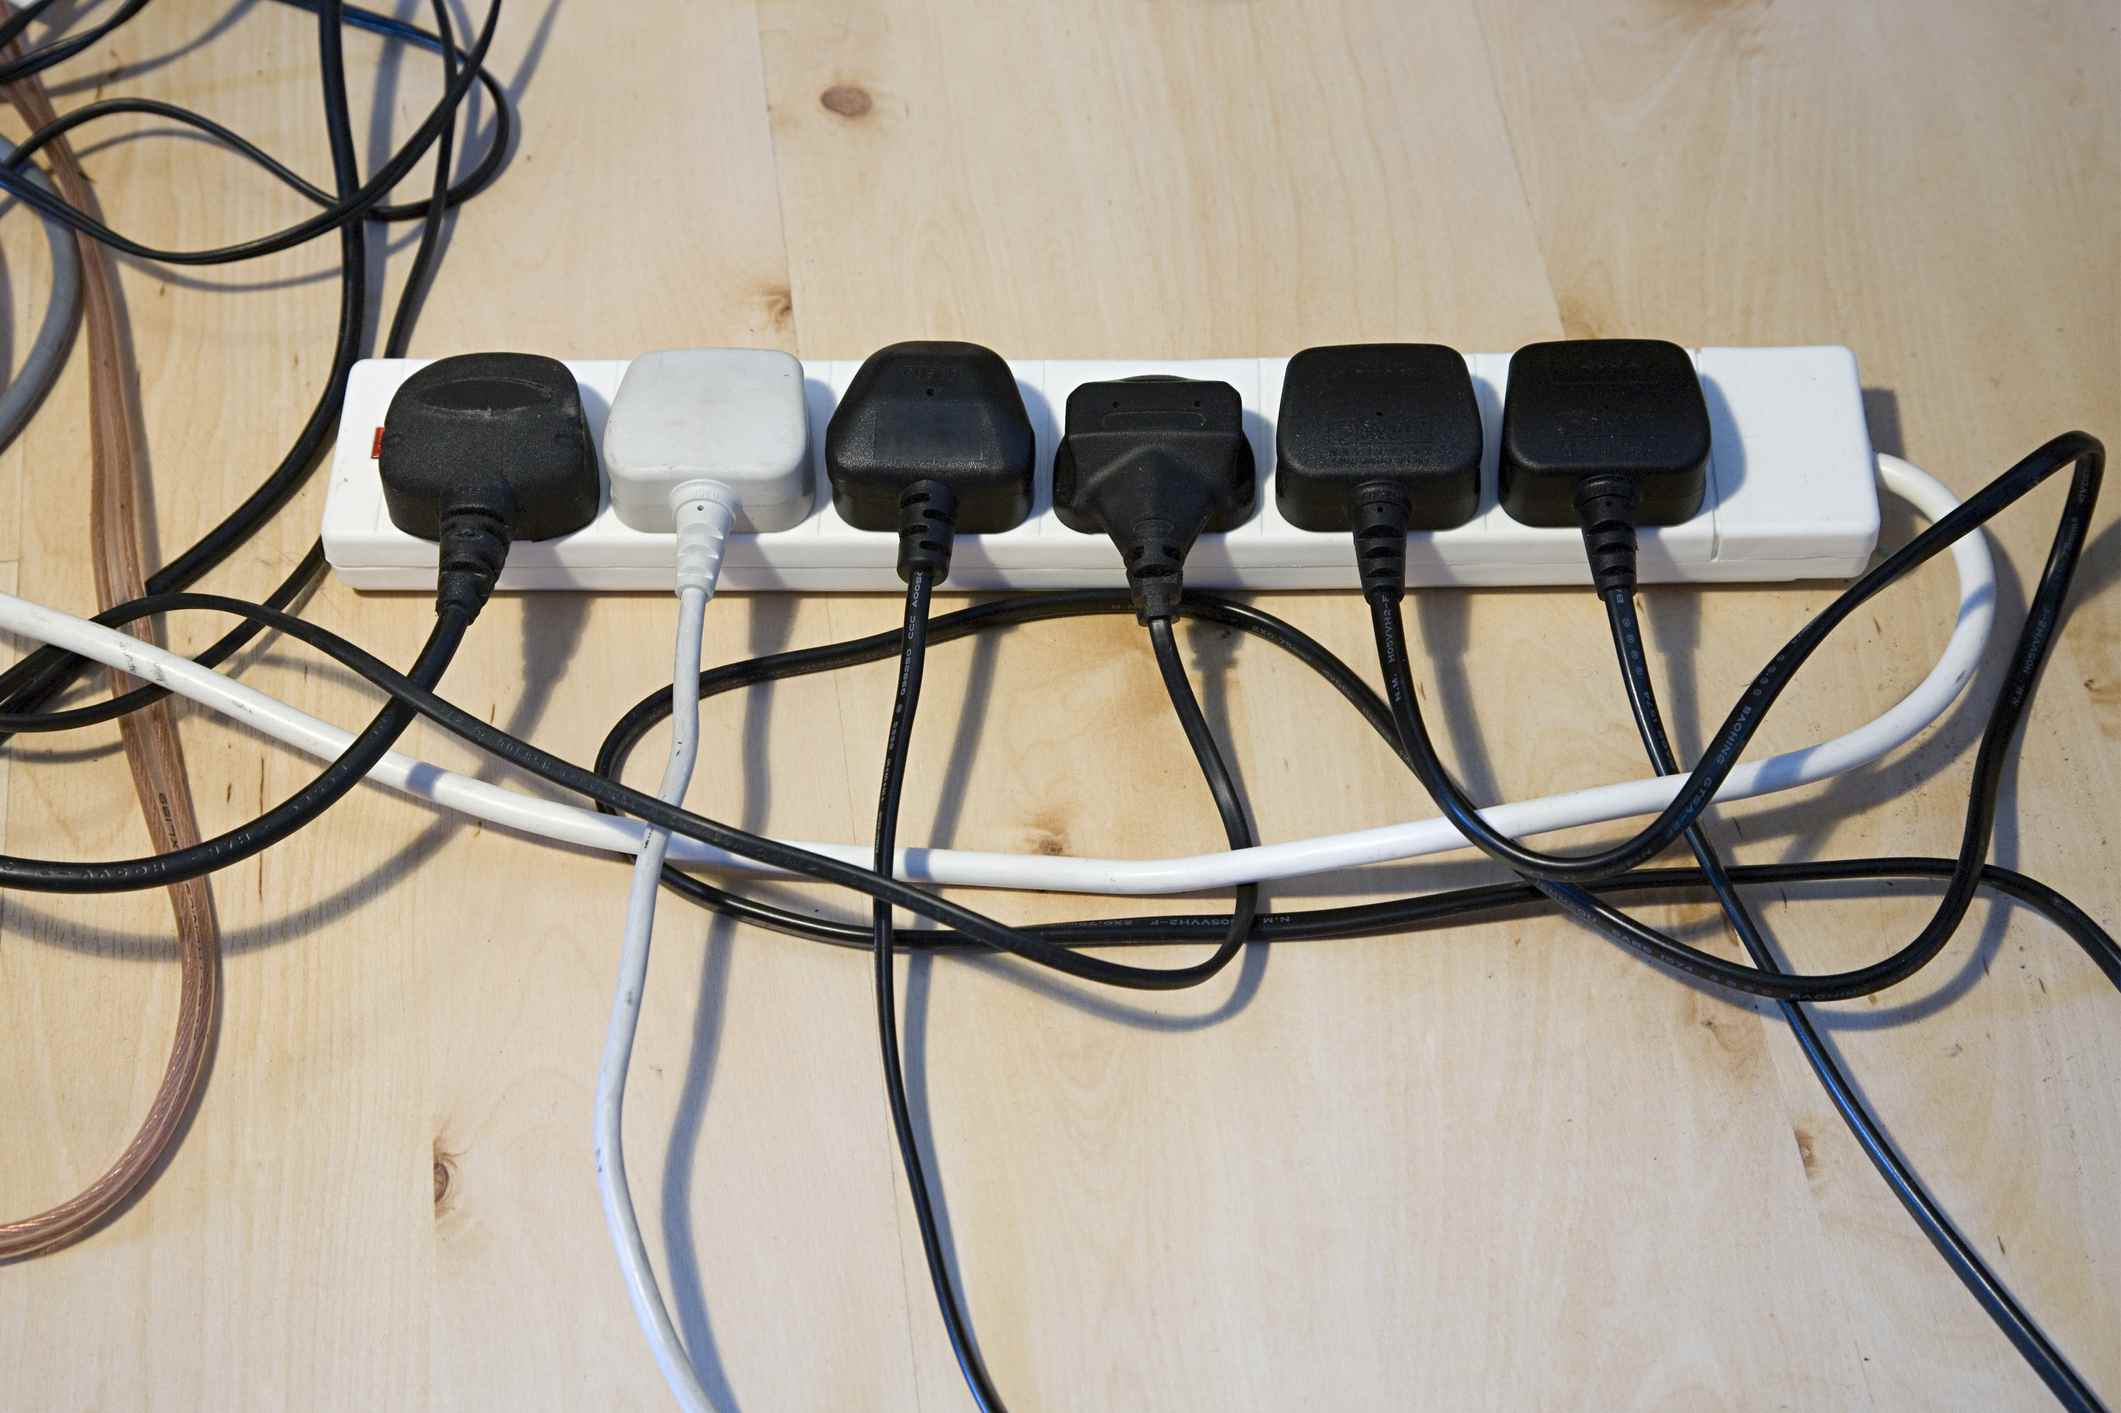 Extension cord that holds multiple plugs